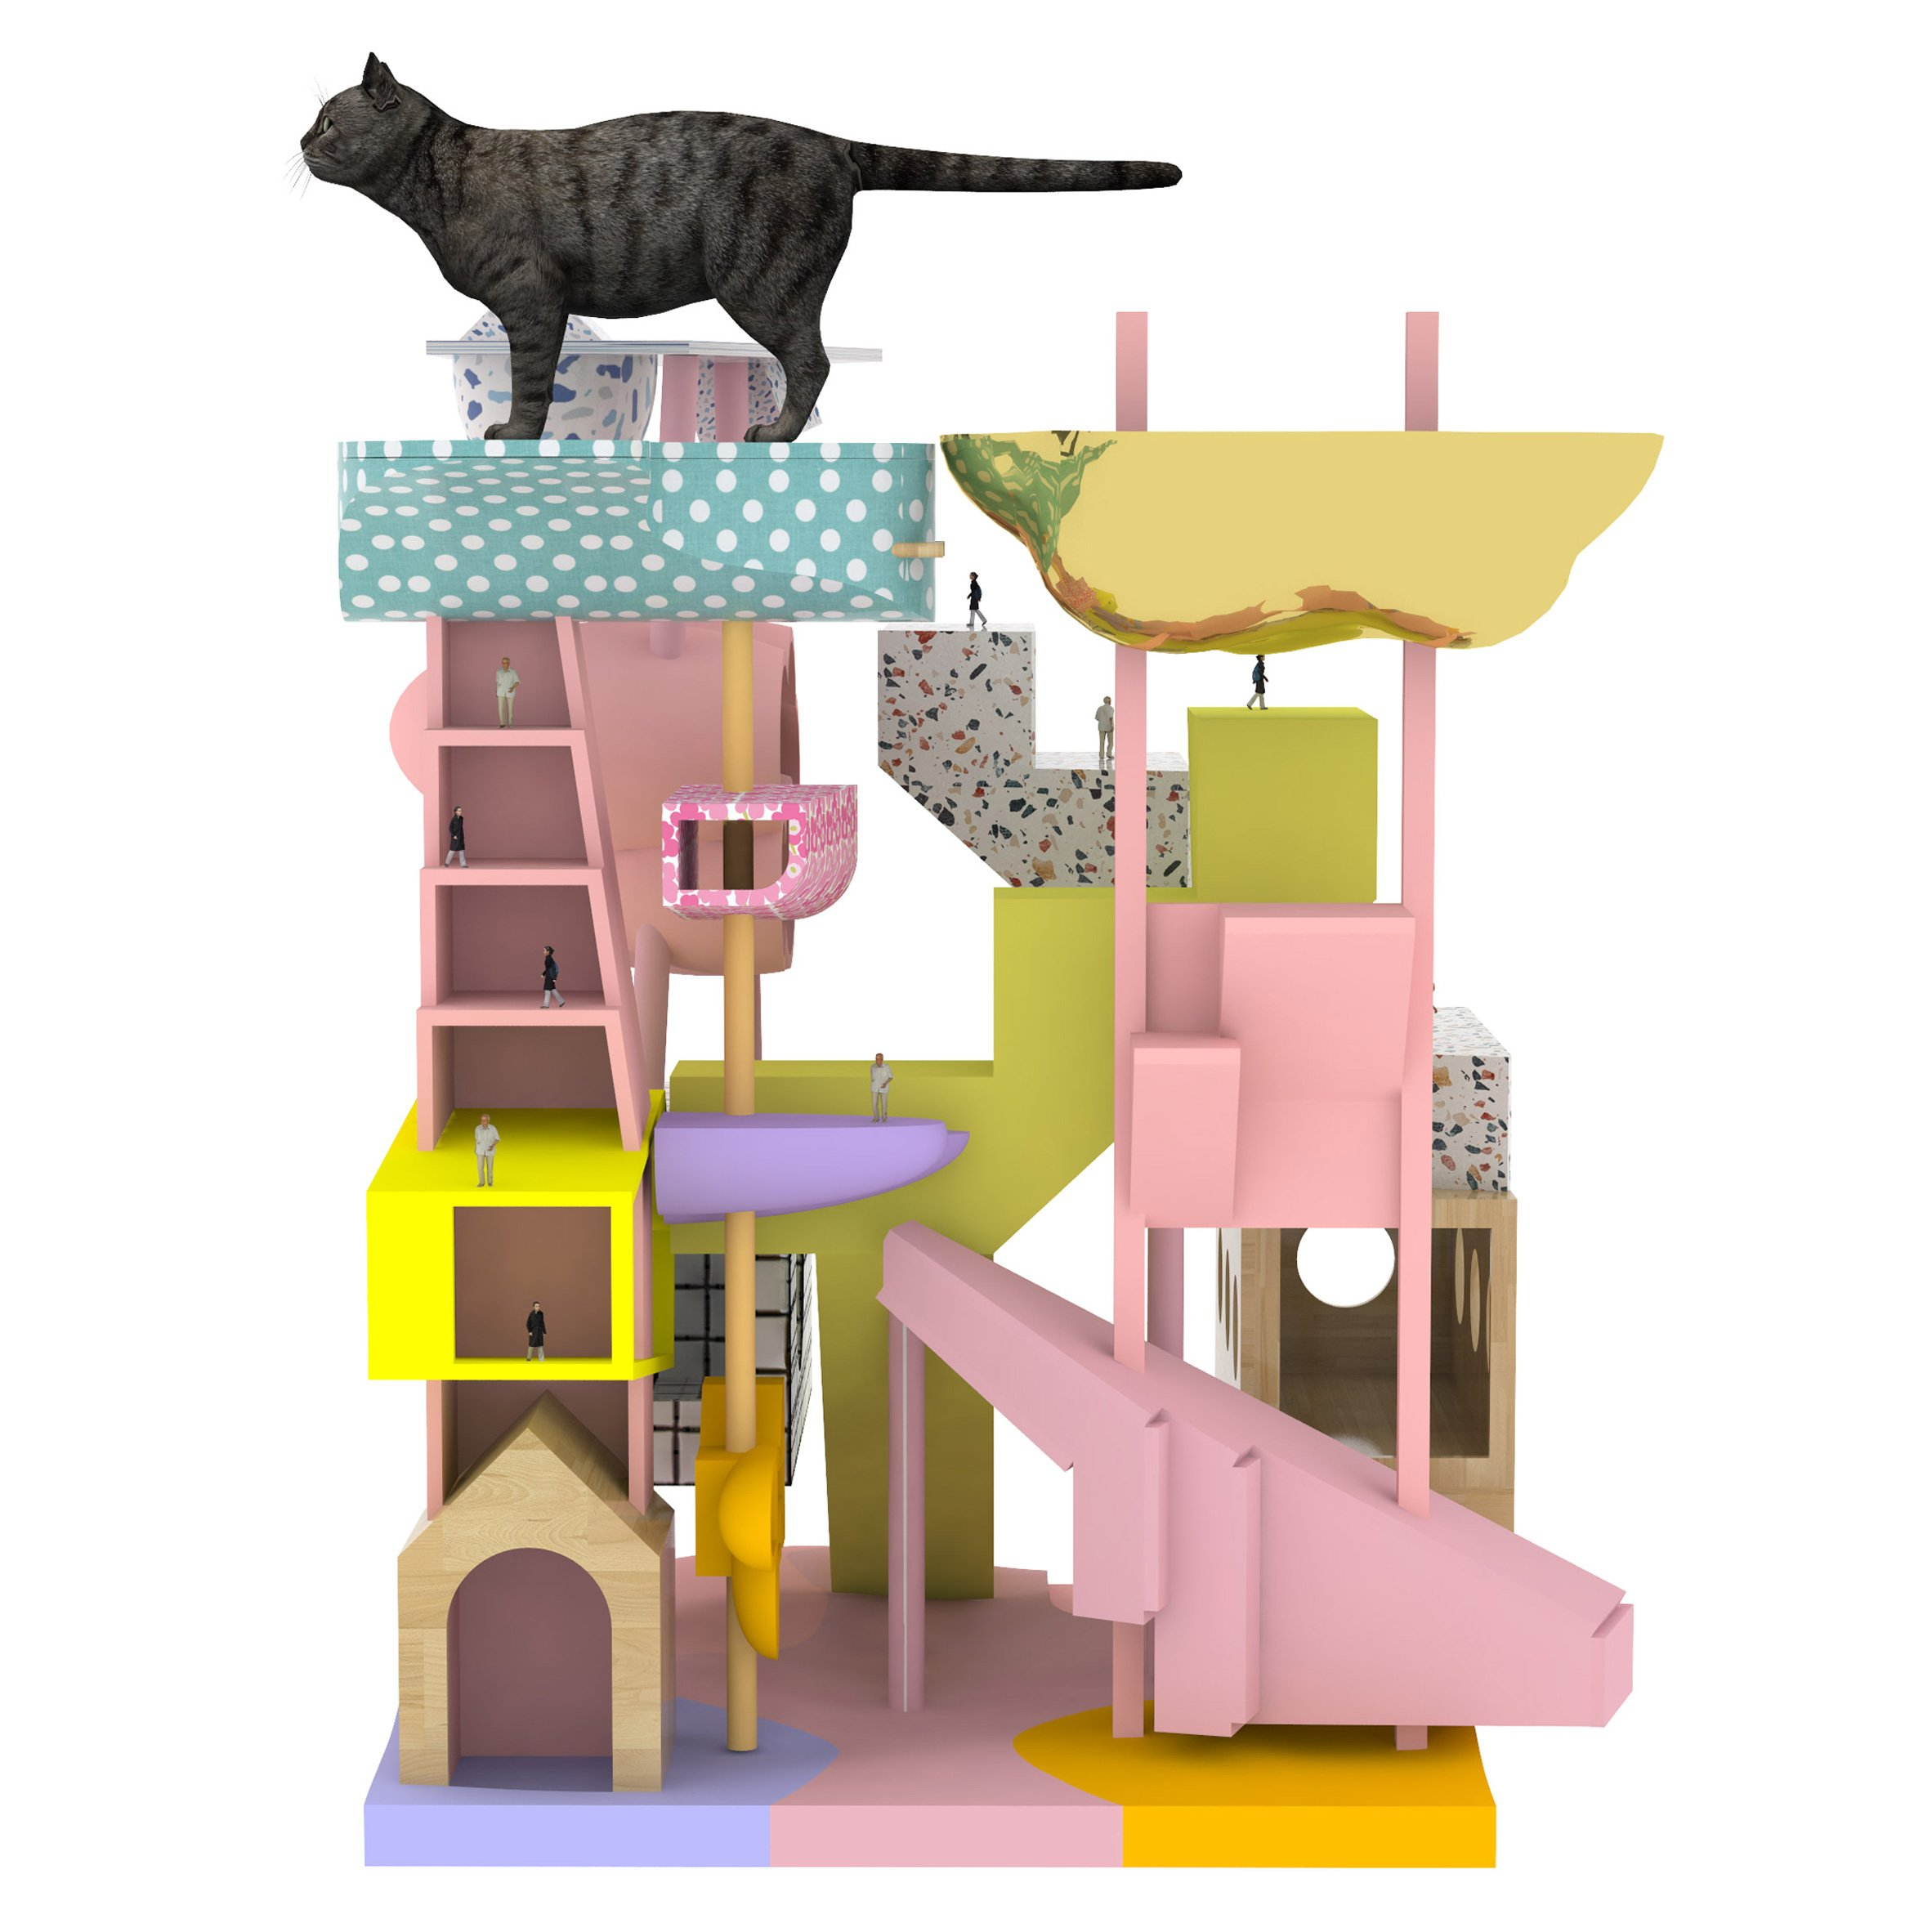 Bureau Spectacular creates high-rise architecture model that doubles as a cat tower